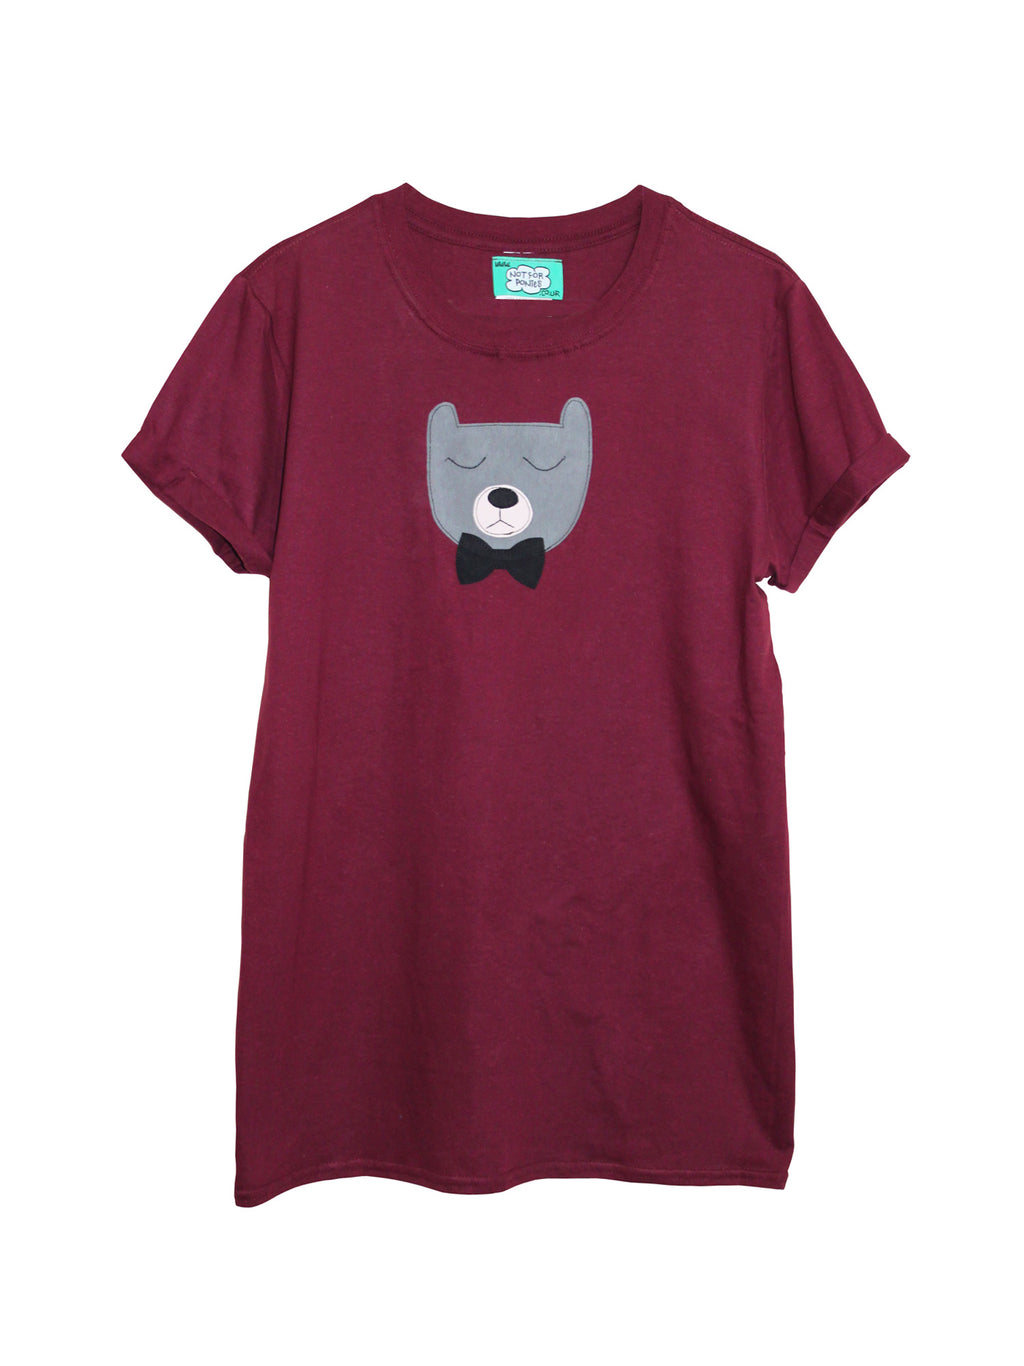 Women's Maroon Bear T Shirt by Not For Ponies